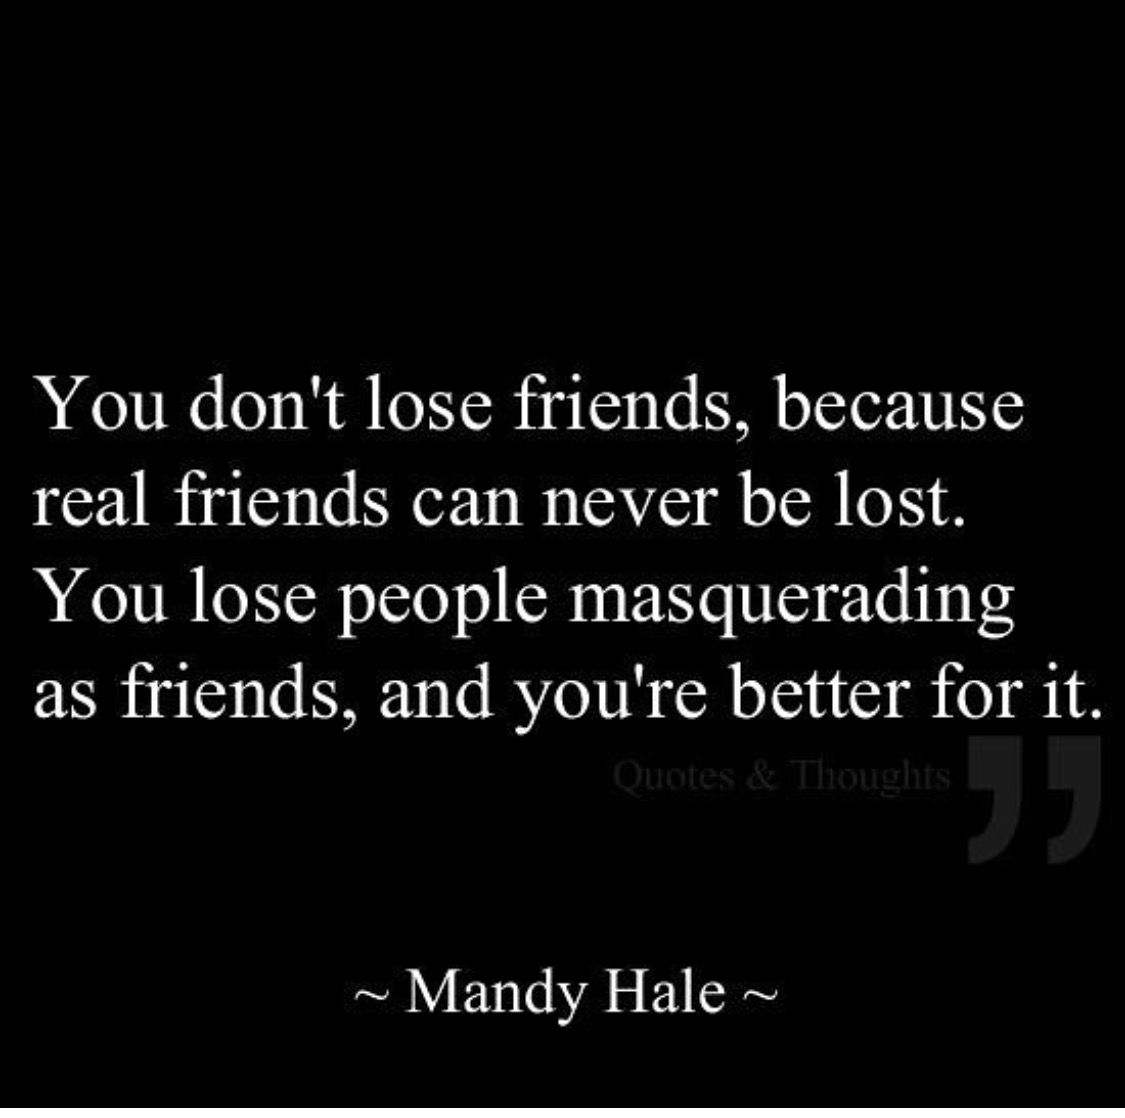 Mandy Hale Quotes Amazing Mandy Hale Quote  Online Sayings  Pinterest  Truths .